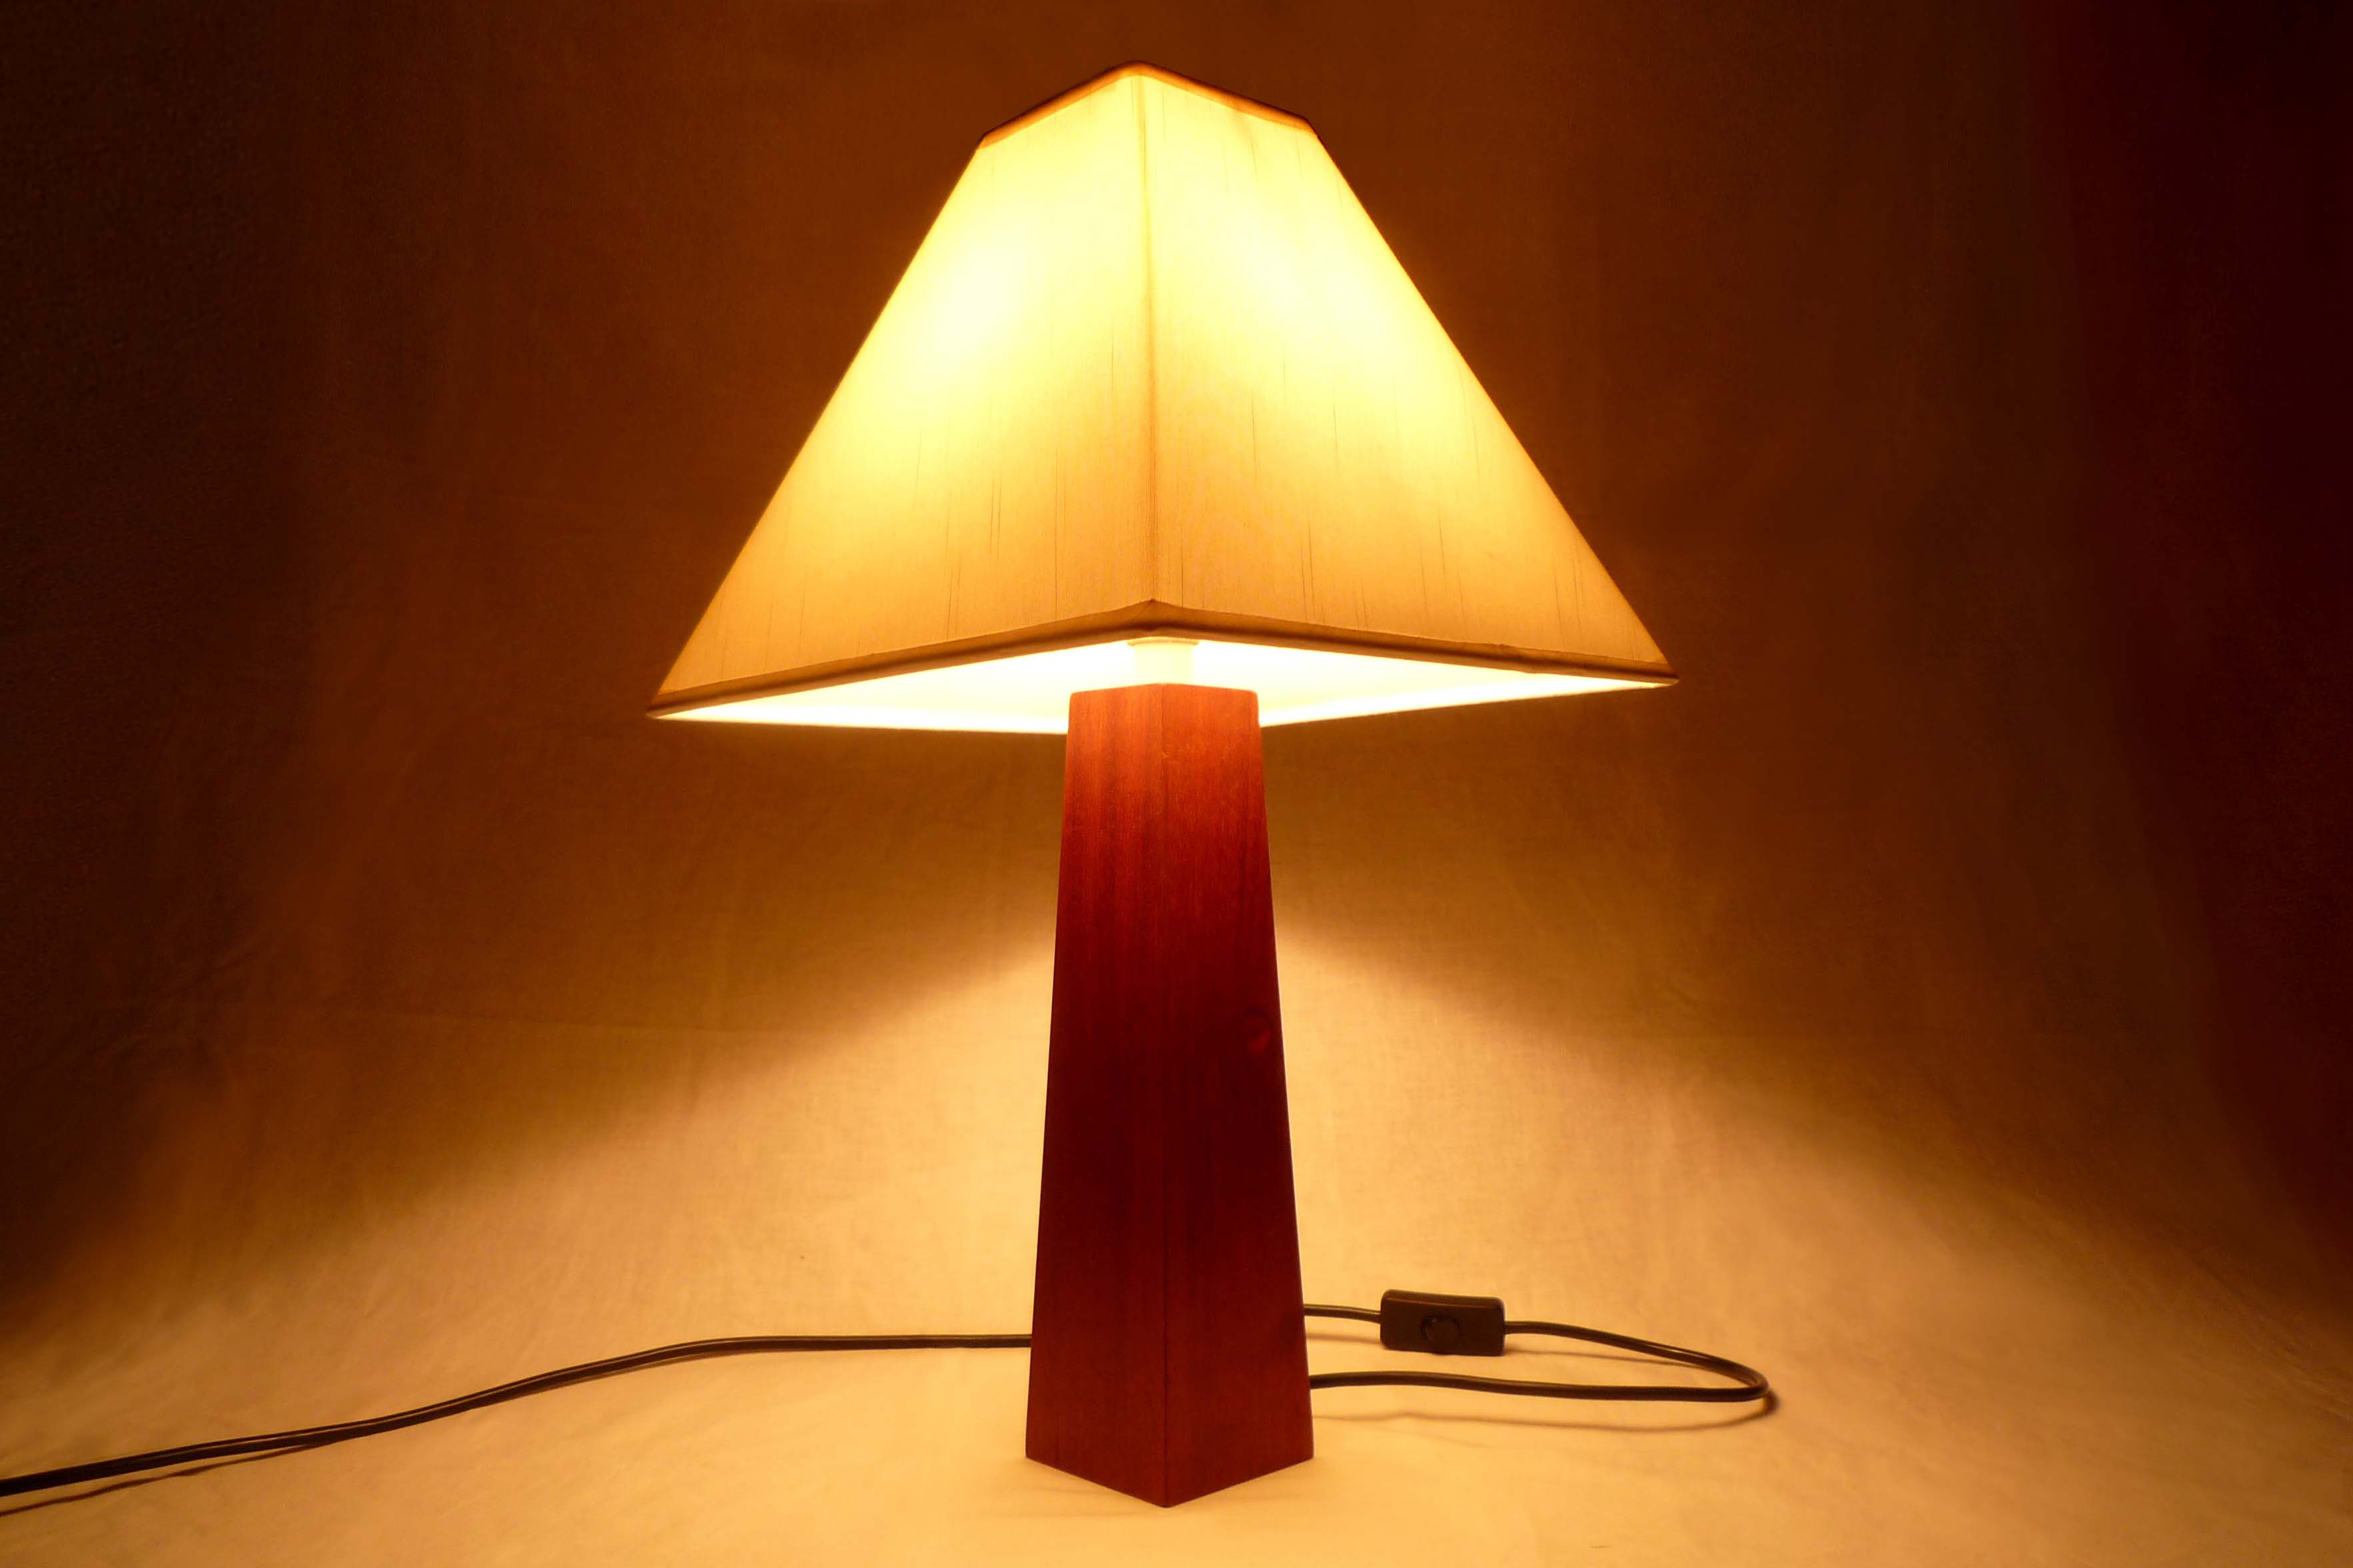 ambient lamp photo - 1